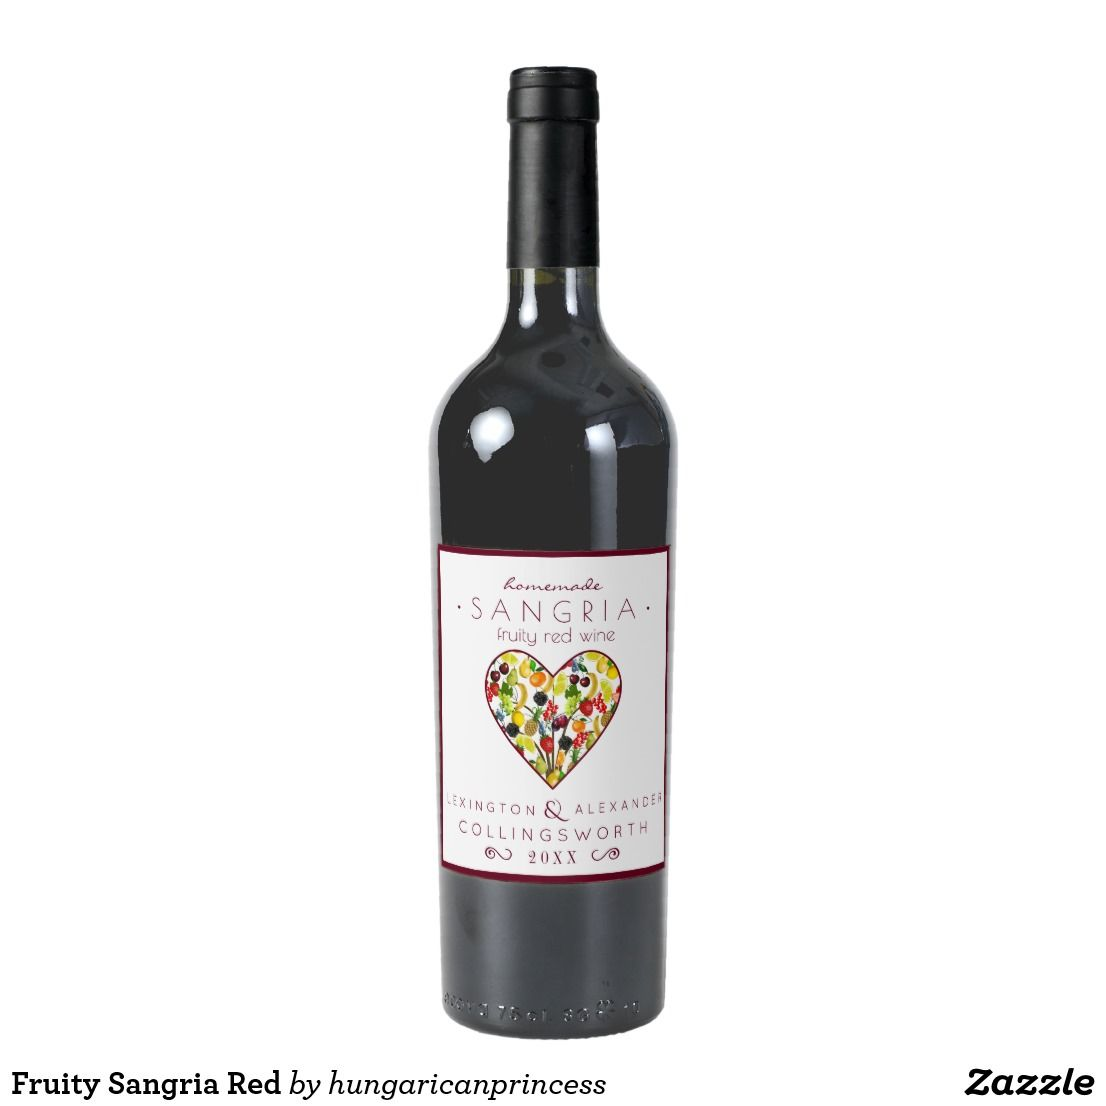 Fruity Sangria Red Wine Label | Wine, Red wines and Sangria